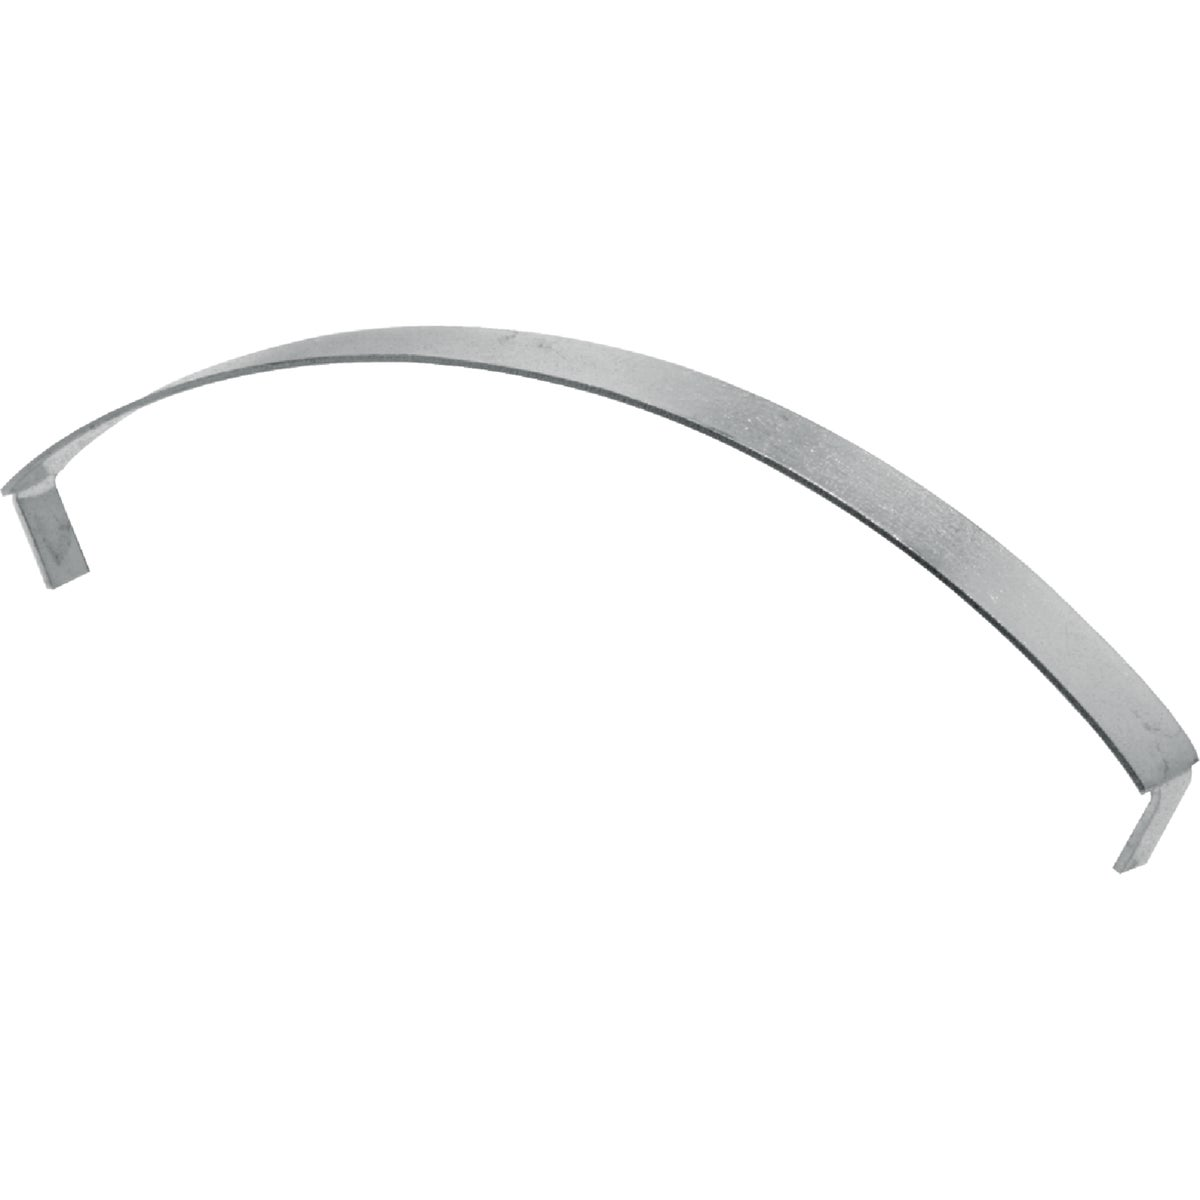 3-1/8 FLAT WINDOW SPRING - PL14624 by Prime Line Products